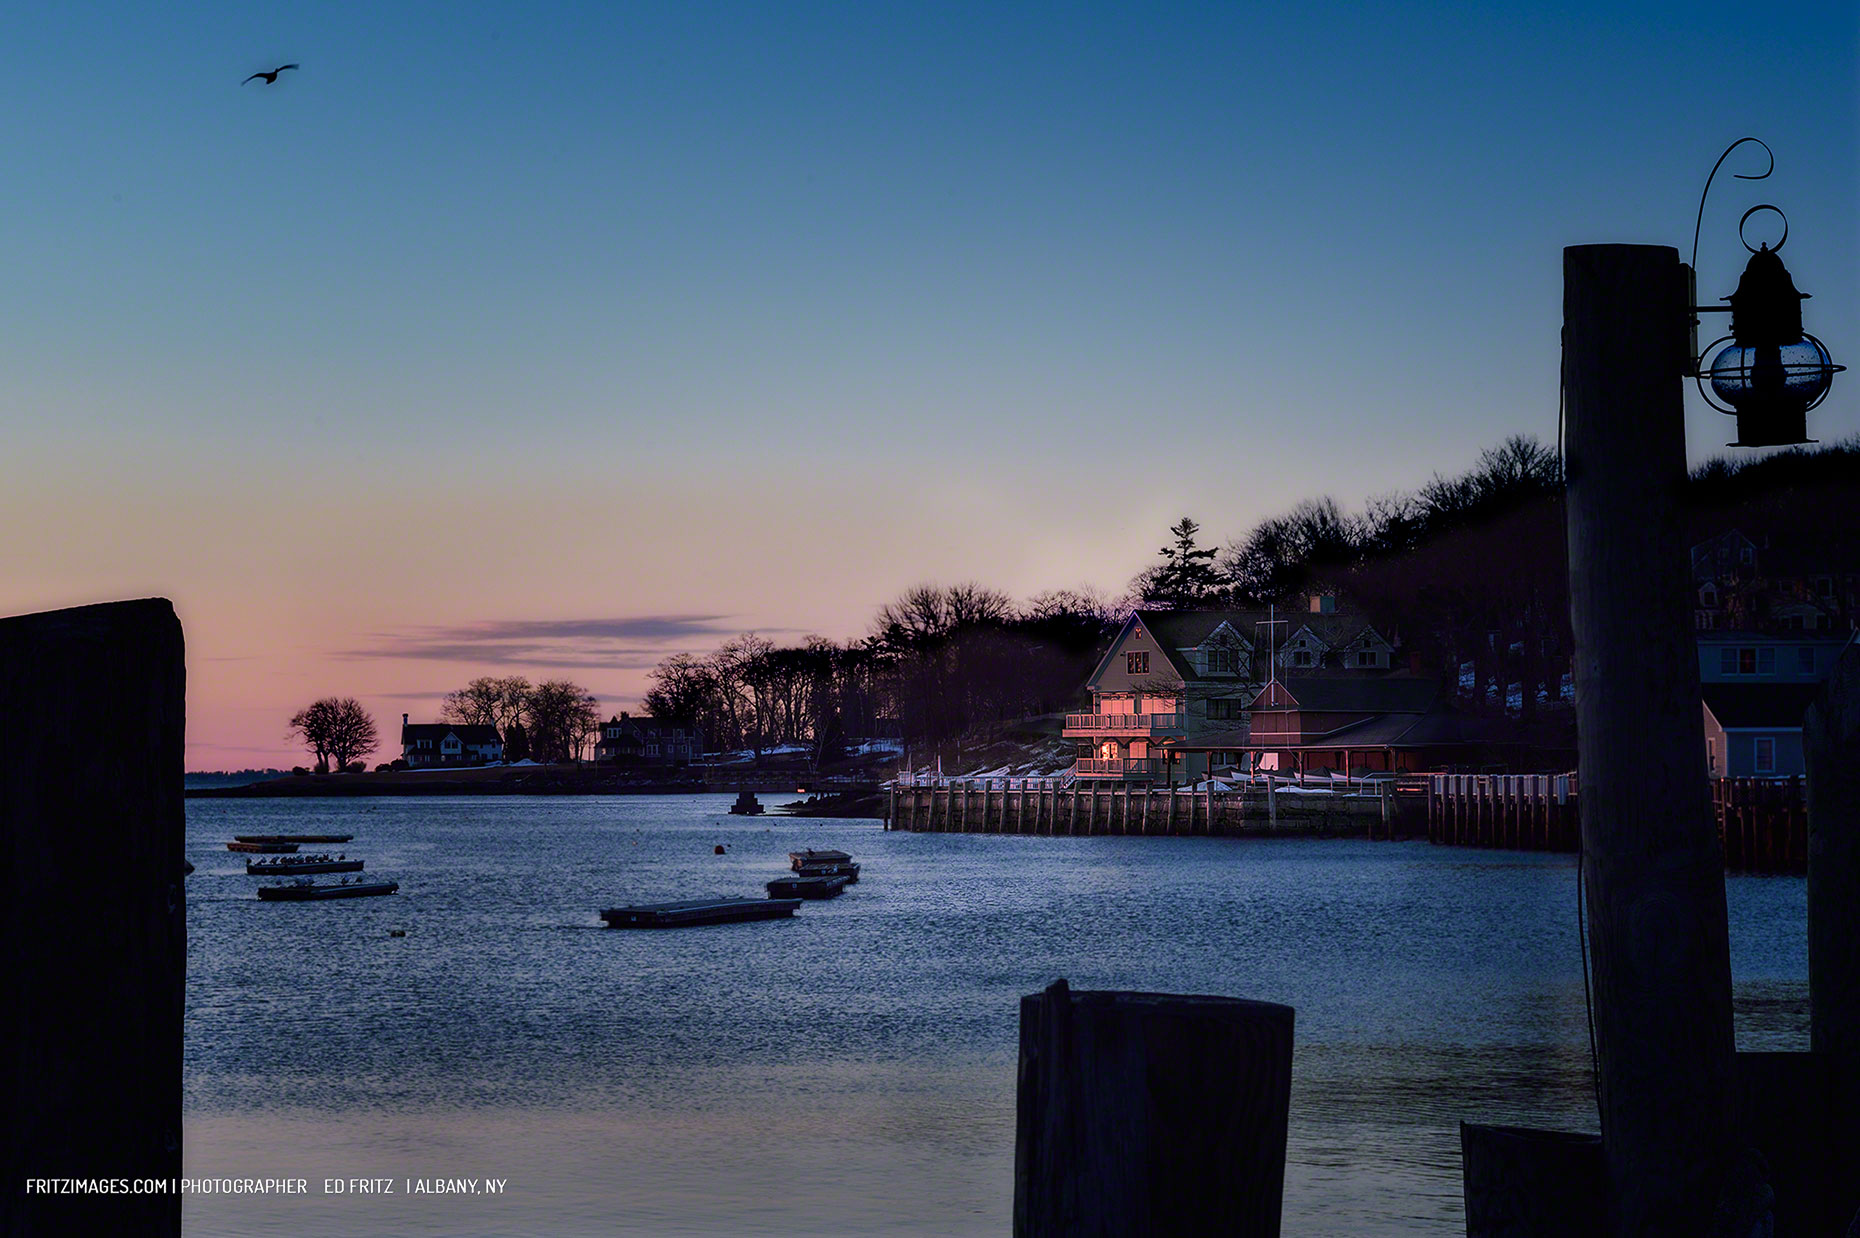 FritzImages | Travel and Outdoor Digital Images | image name = FIFP 0150331 Camden Harbor iop 1860